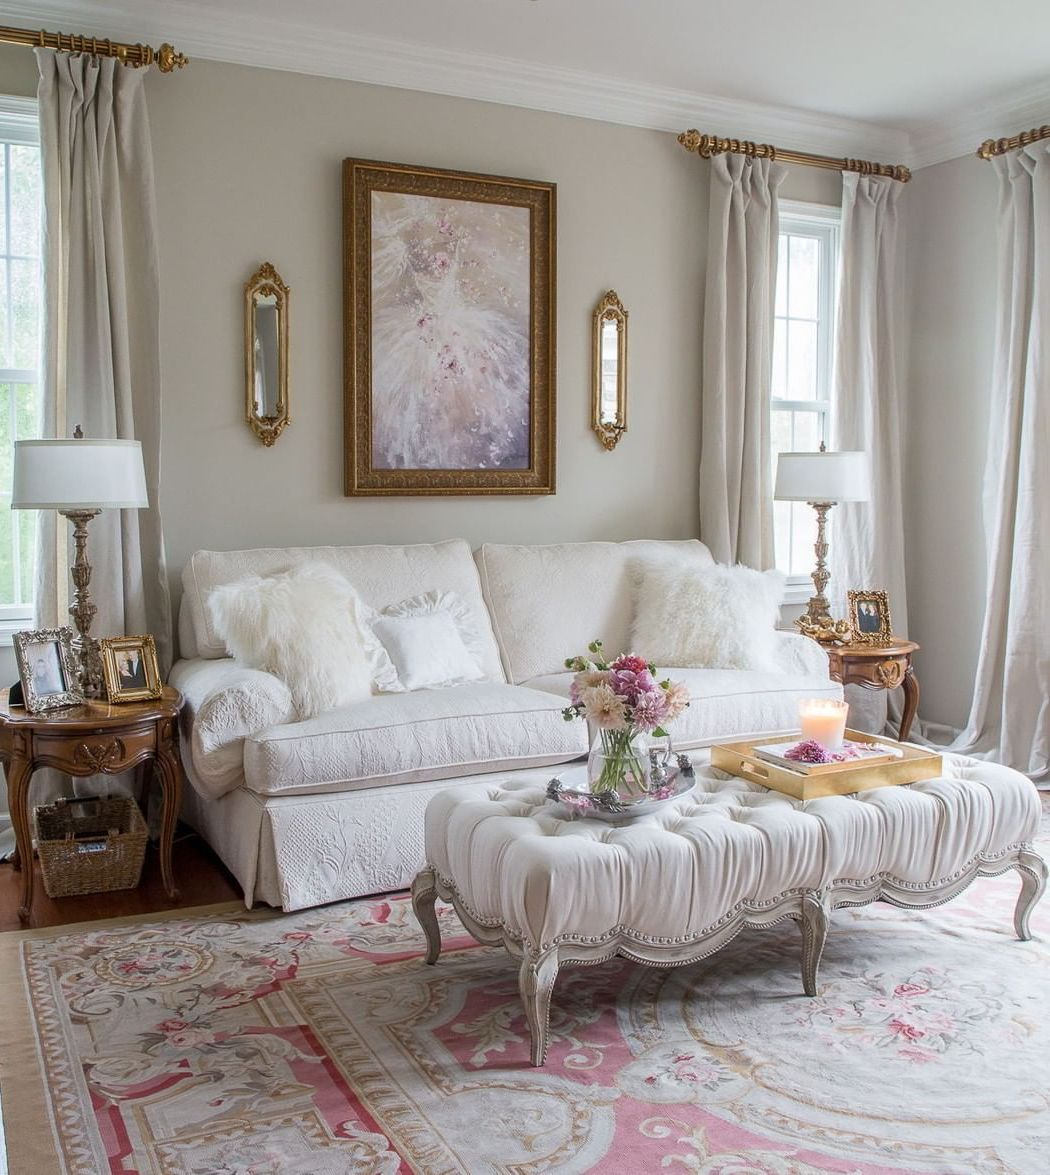 French Country Living Room Decor Ideas, French Country Style Living Room